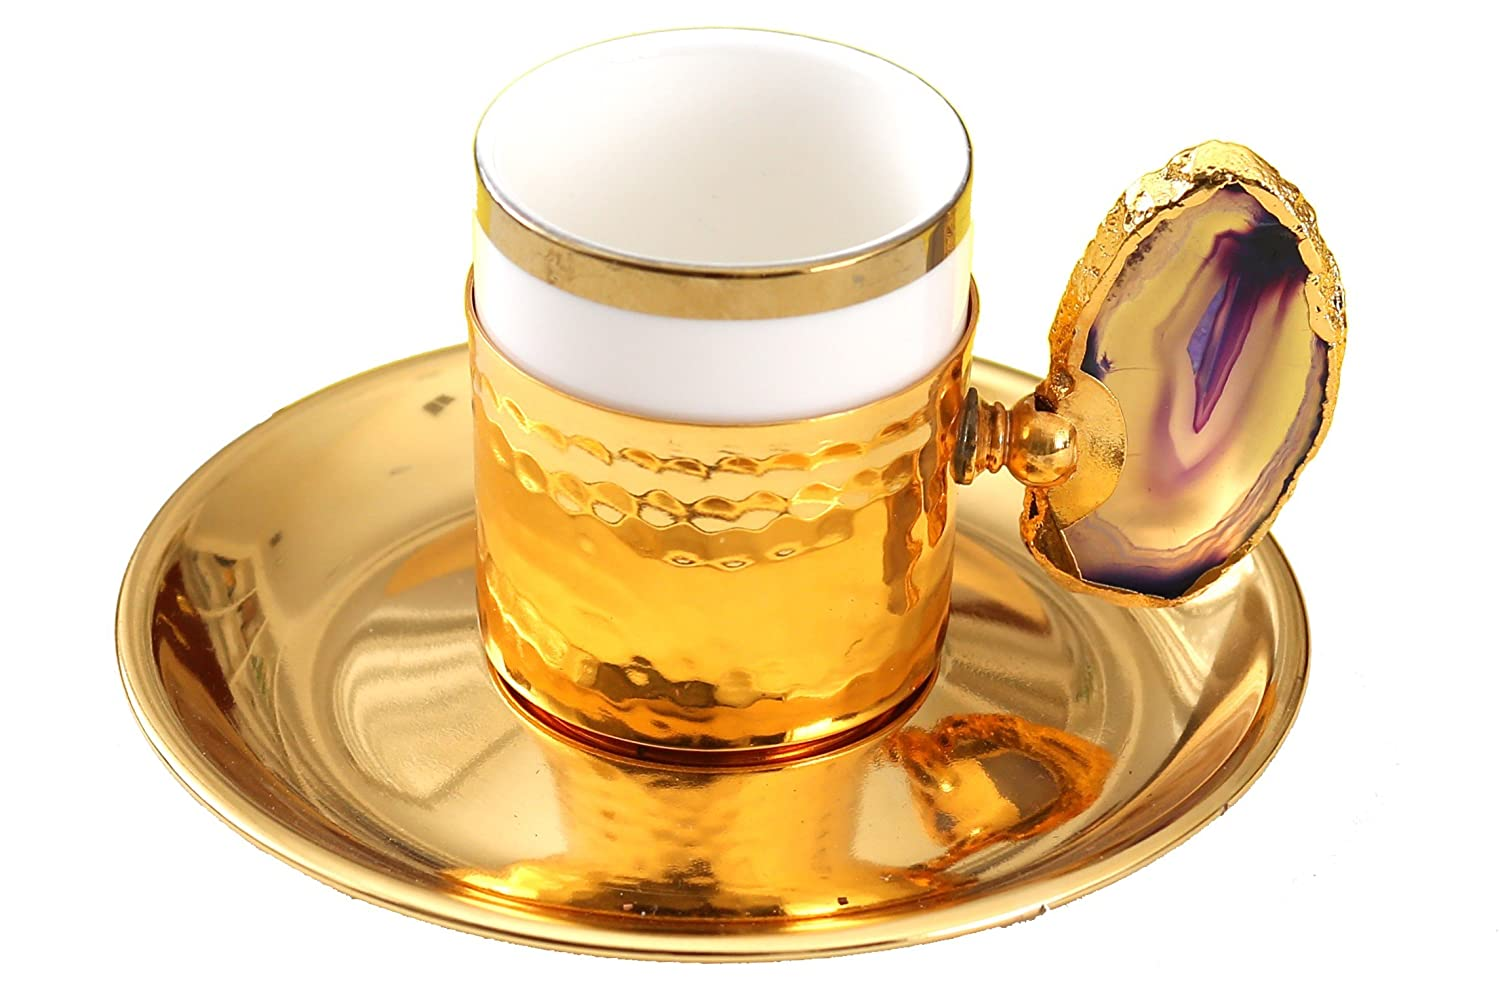 Handcrafted Gold Plated Copper Cup for Turkish, Arabic Coffee & Espresso (1 pc) Turkish made